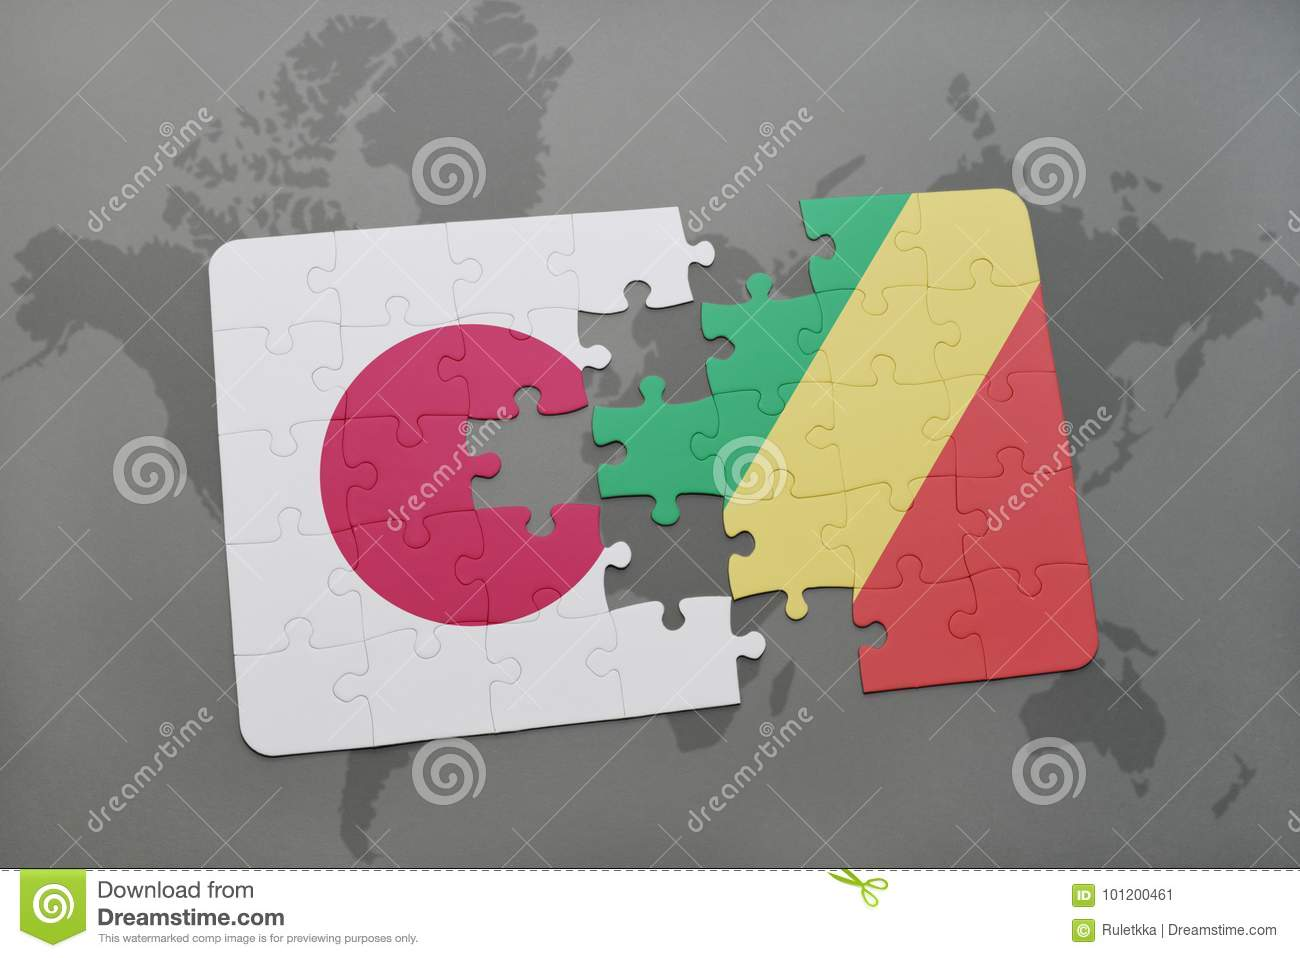 puzzle with the national flag of japan and republic of the congo on a world map background.